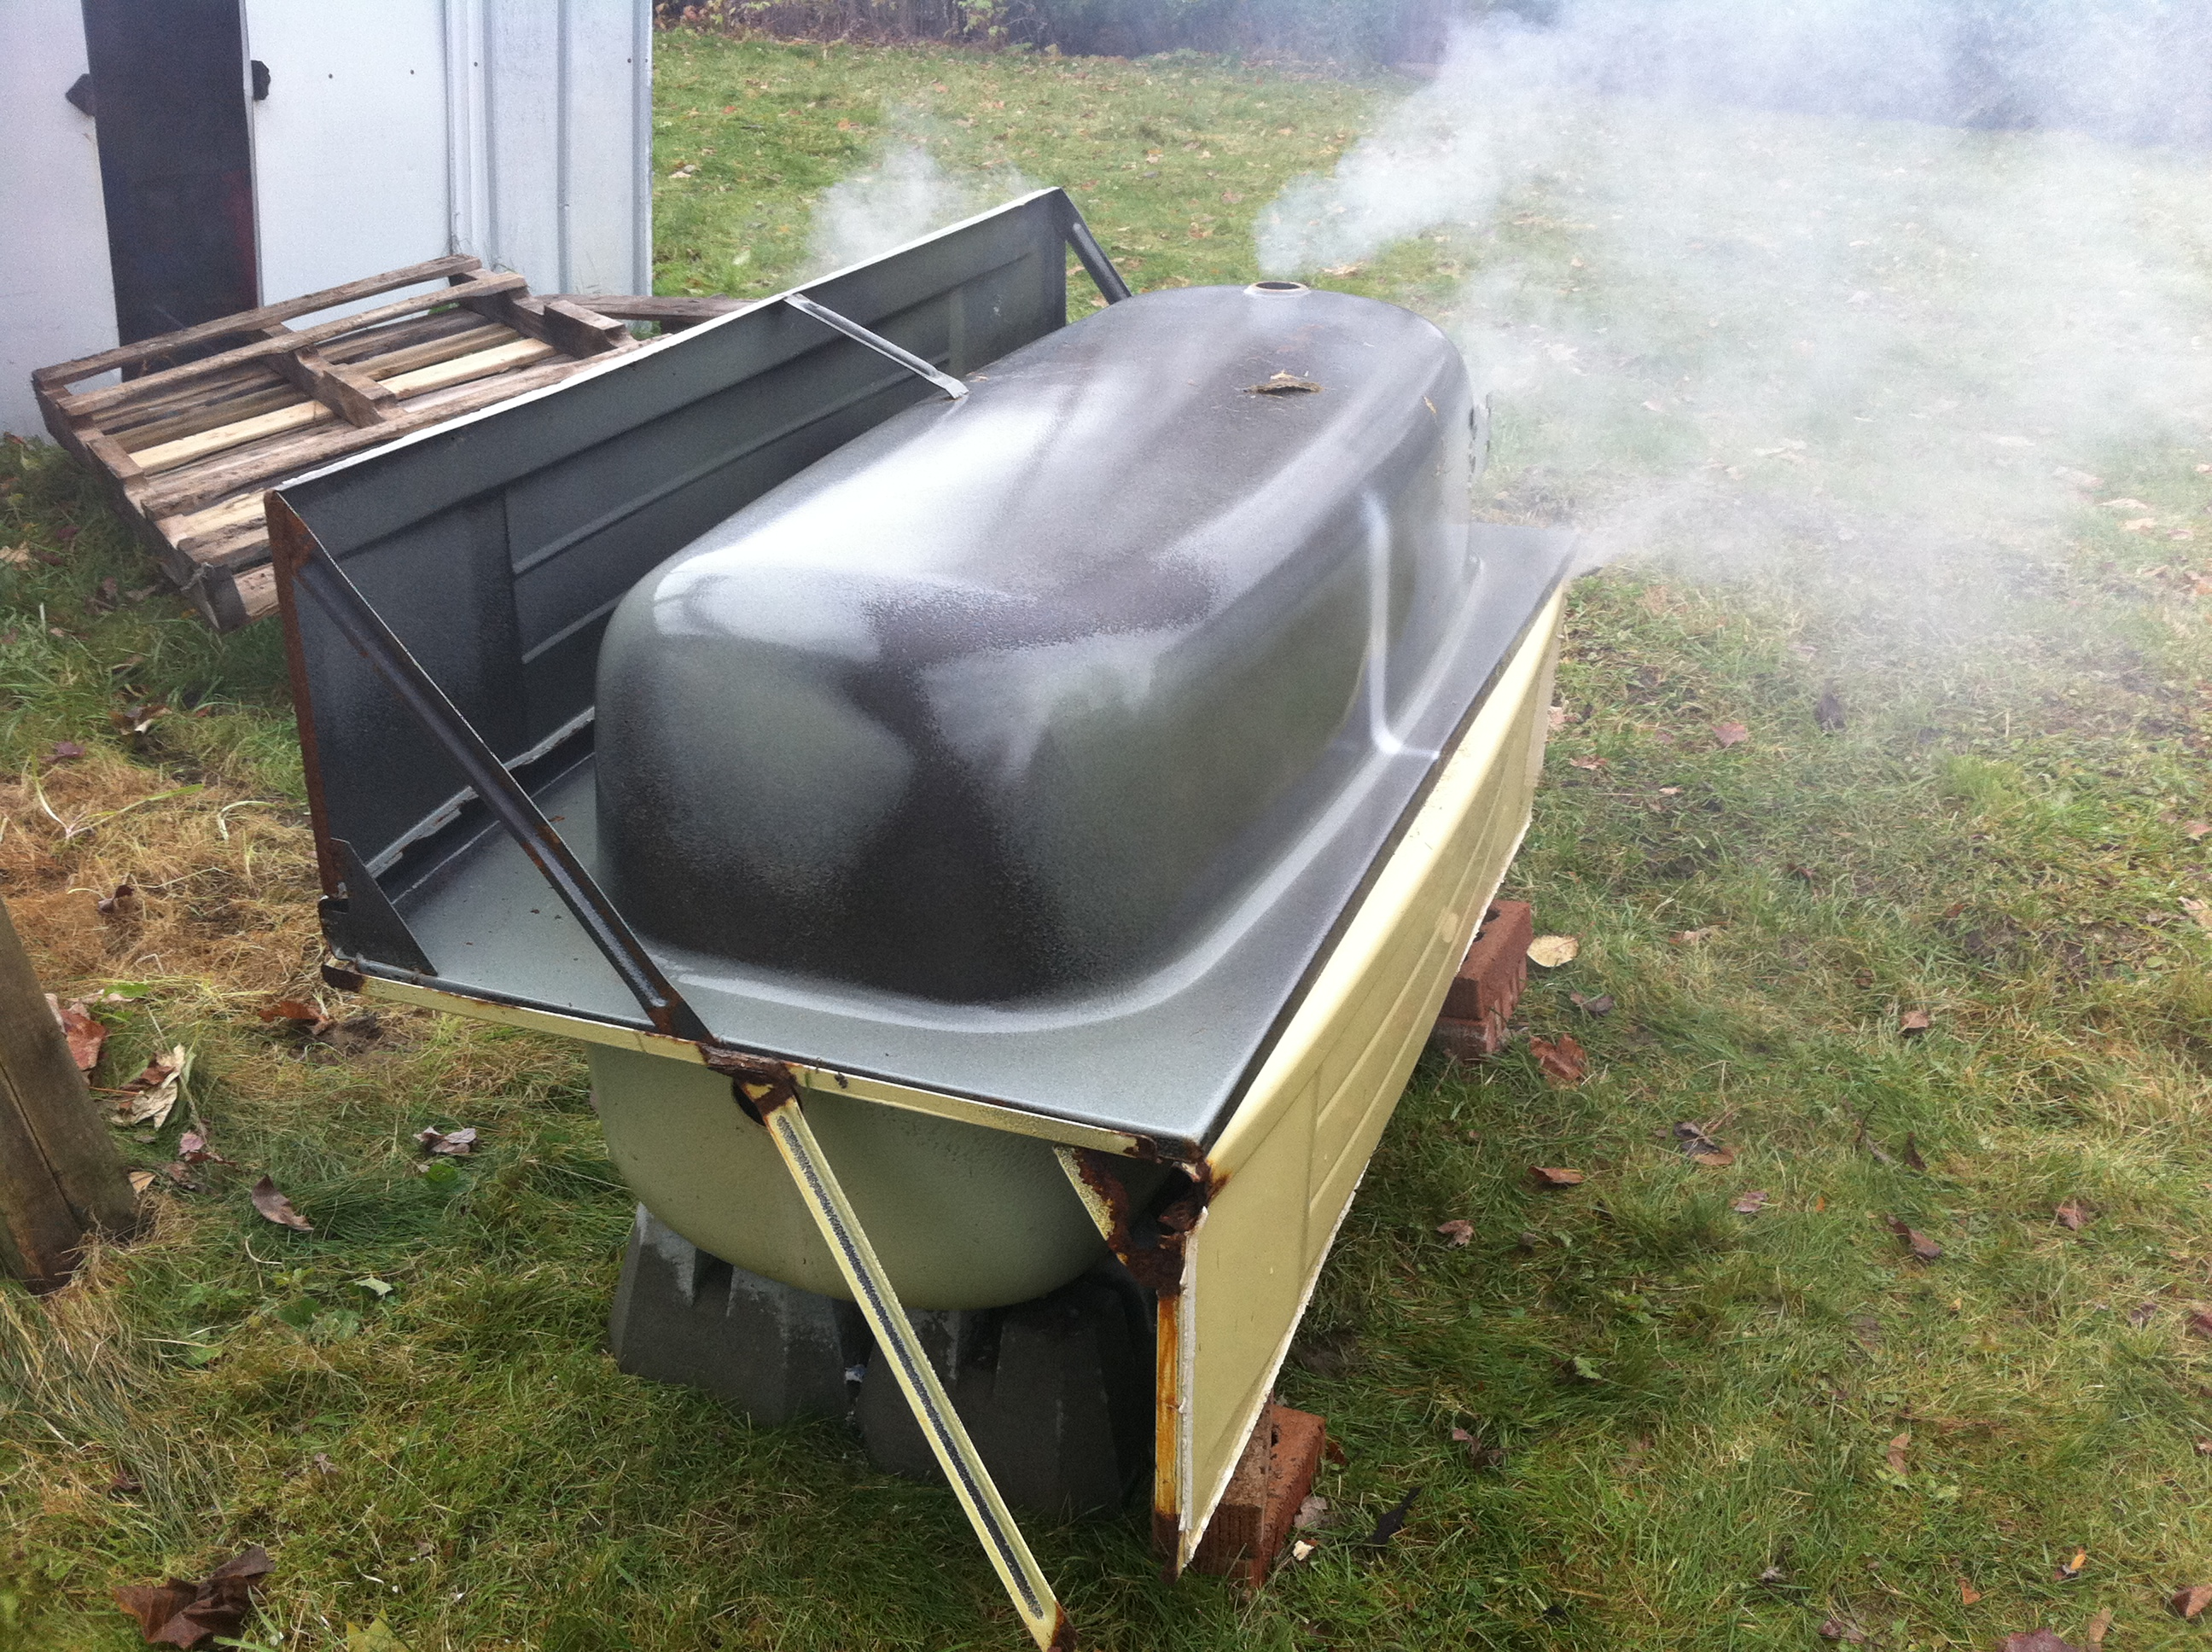 Bath Tub Smoker | Robin Chahal